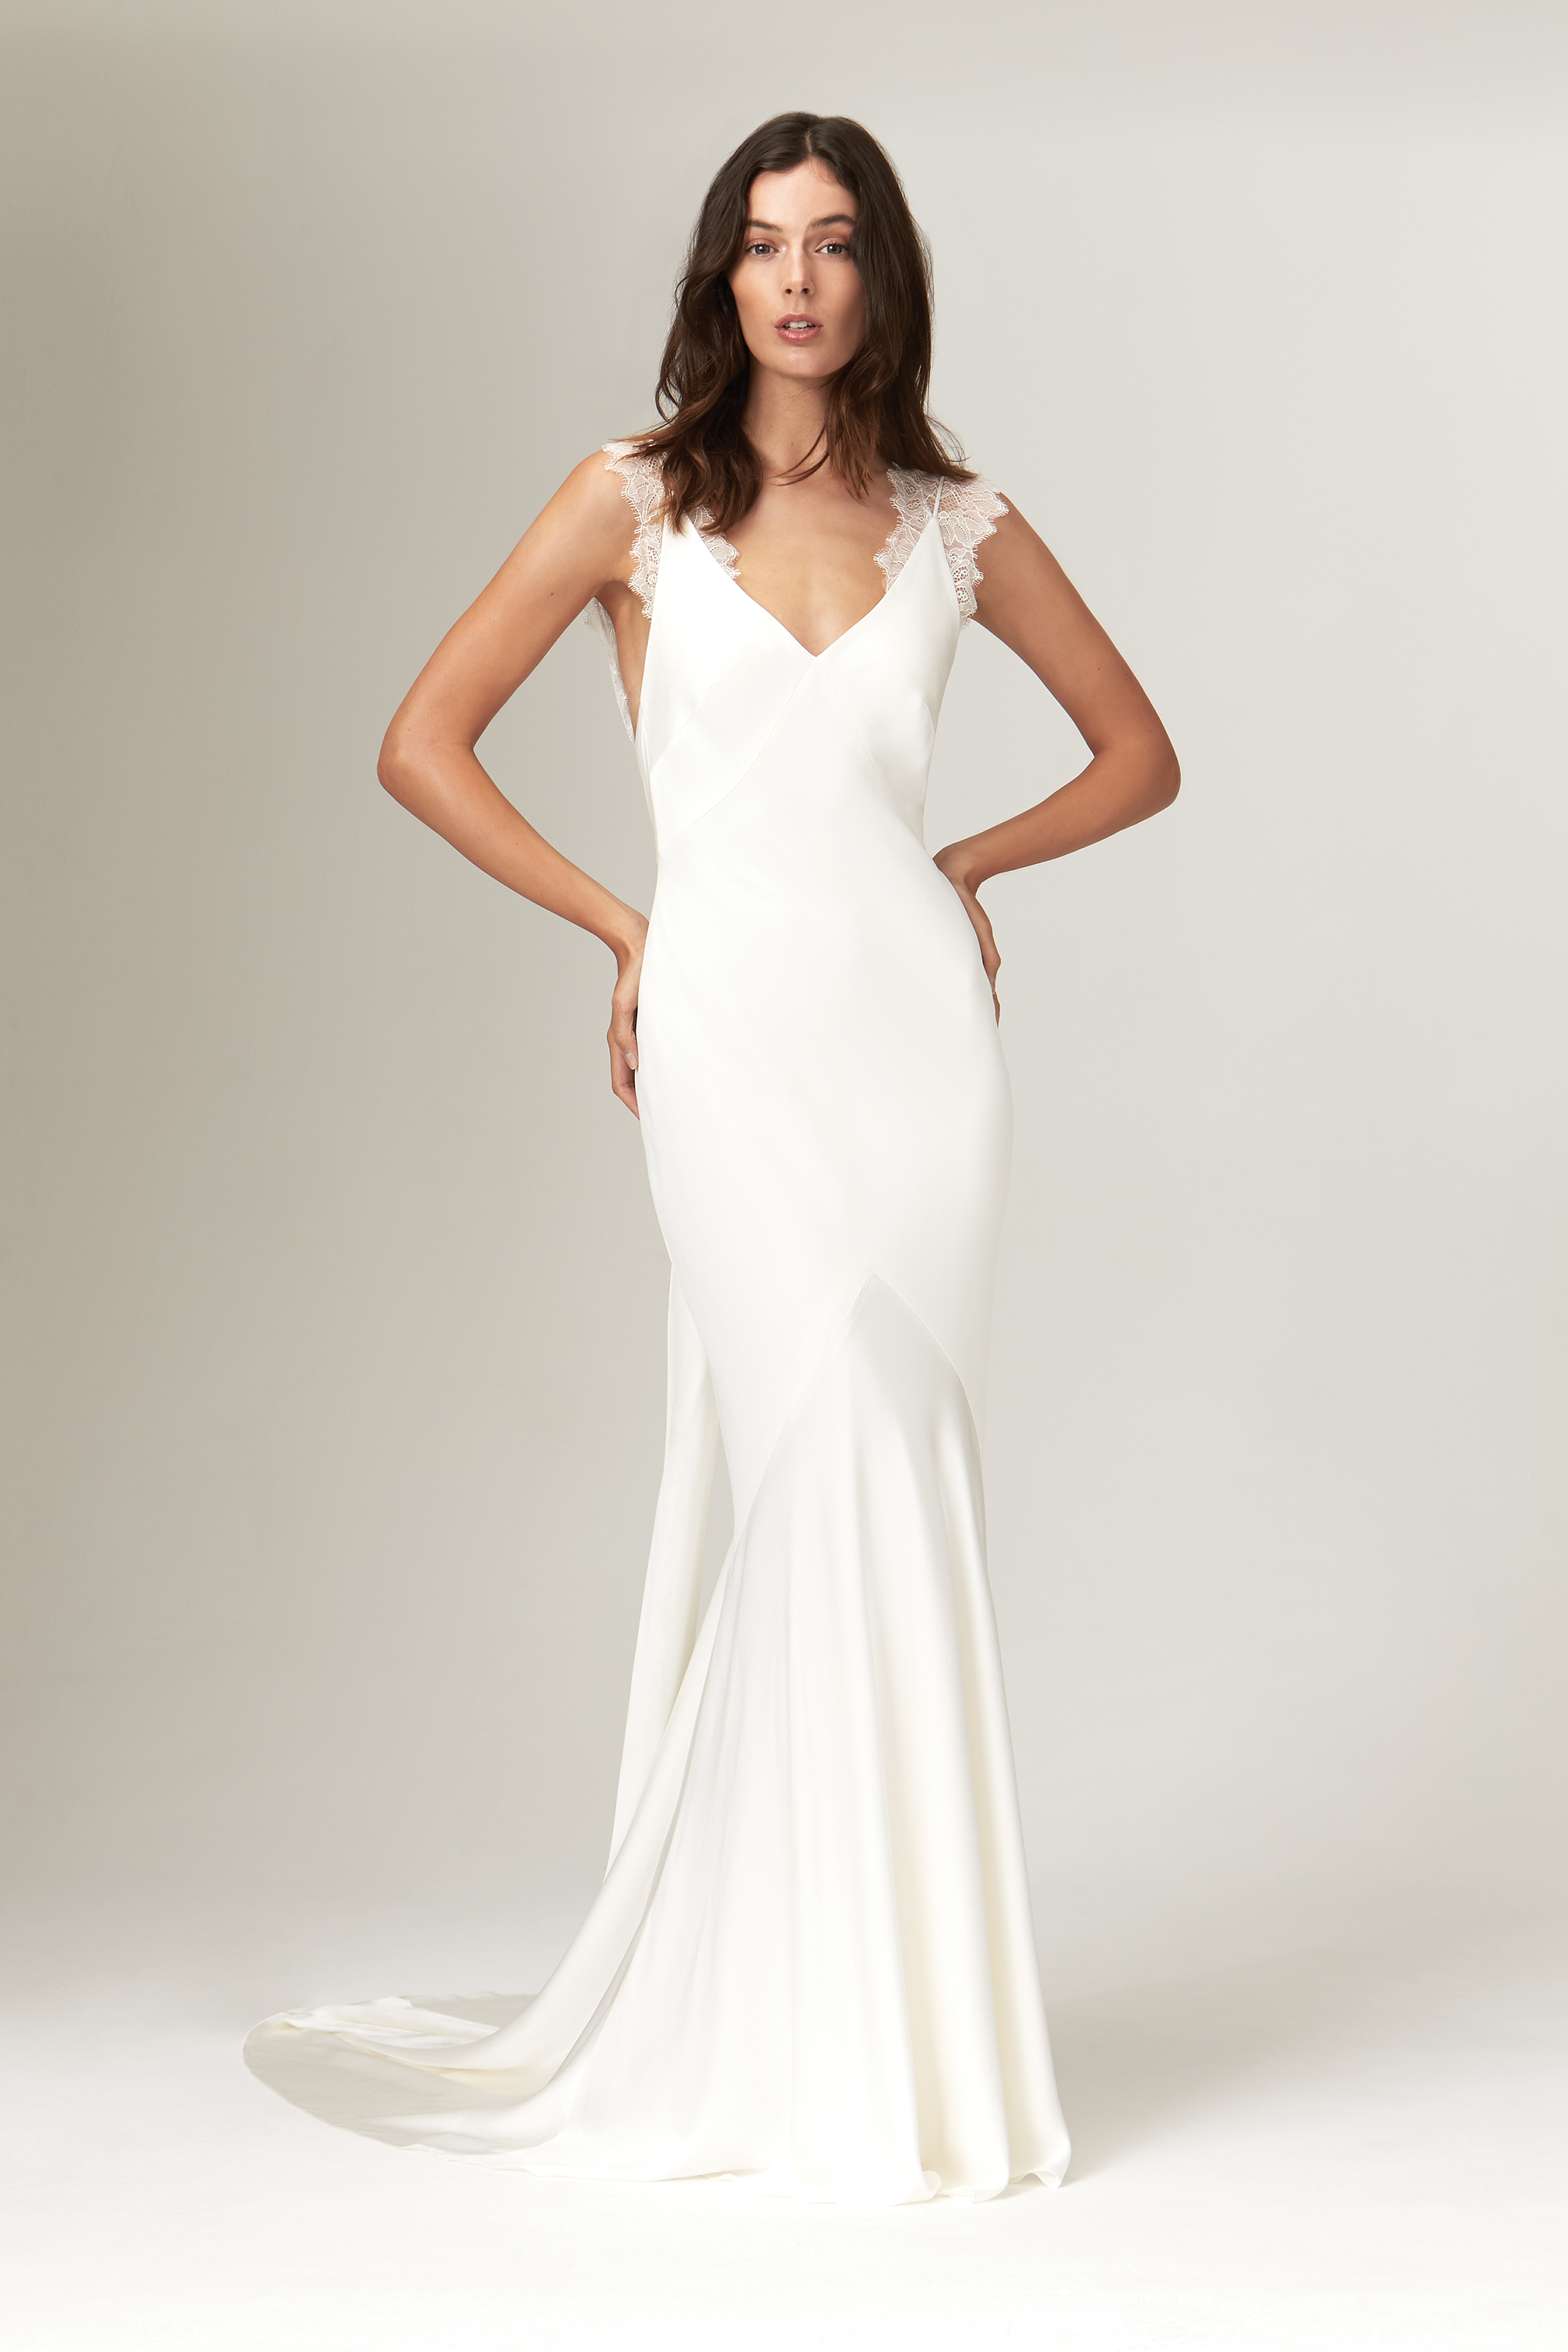 Savannah Miller Fall 2019 Wedding Dress Collection